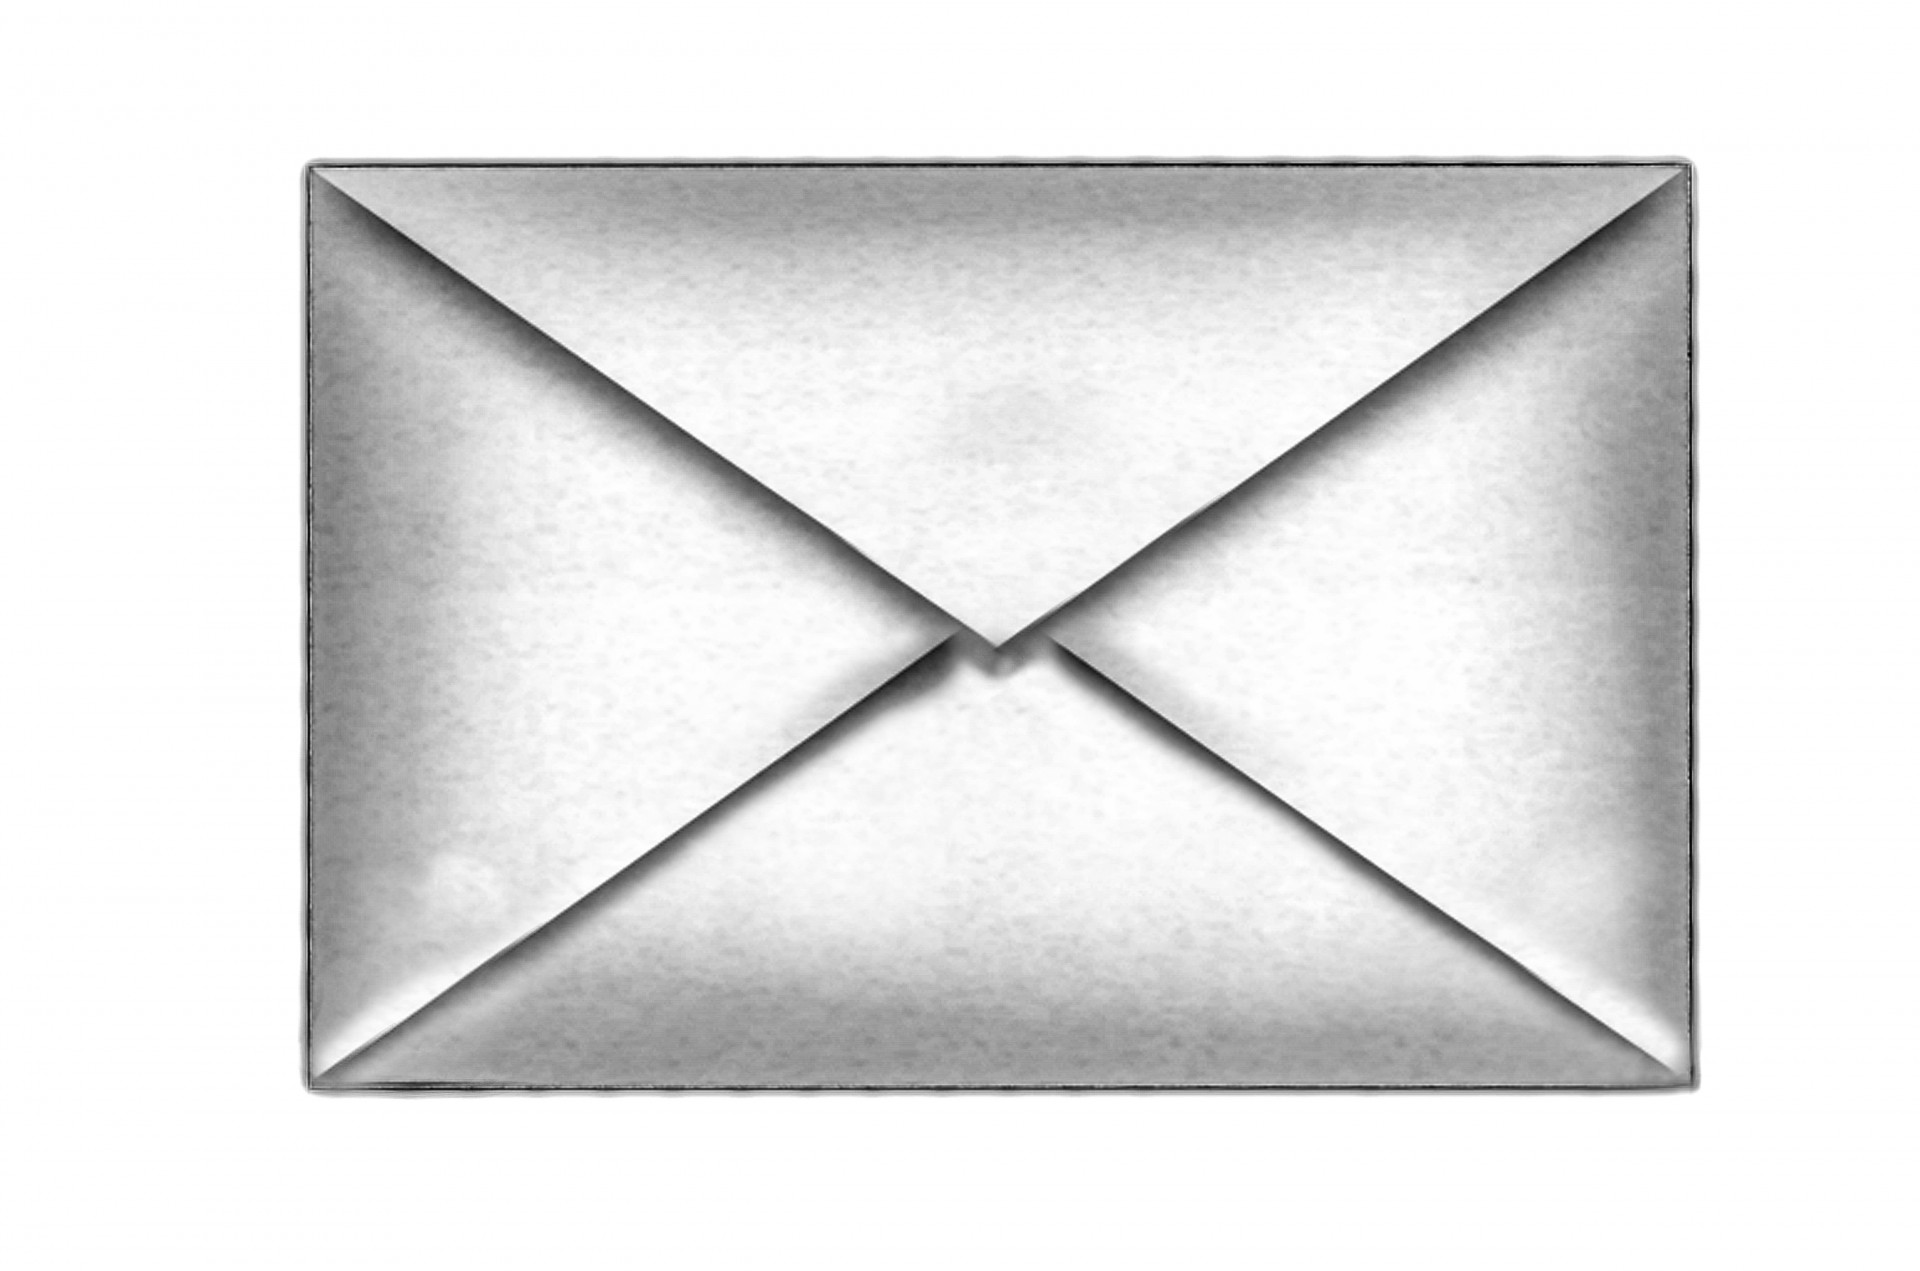 old-envelope-1388592860uij.jpg